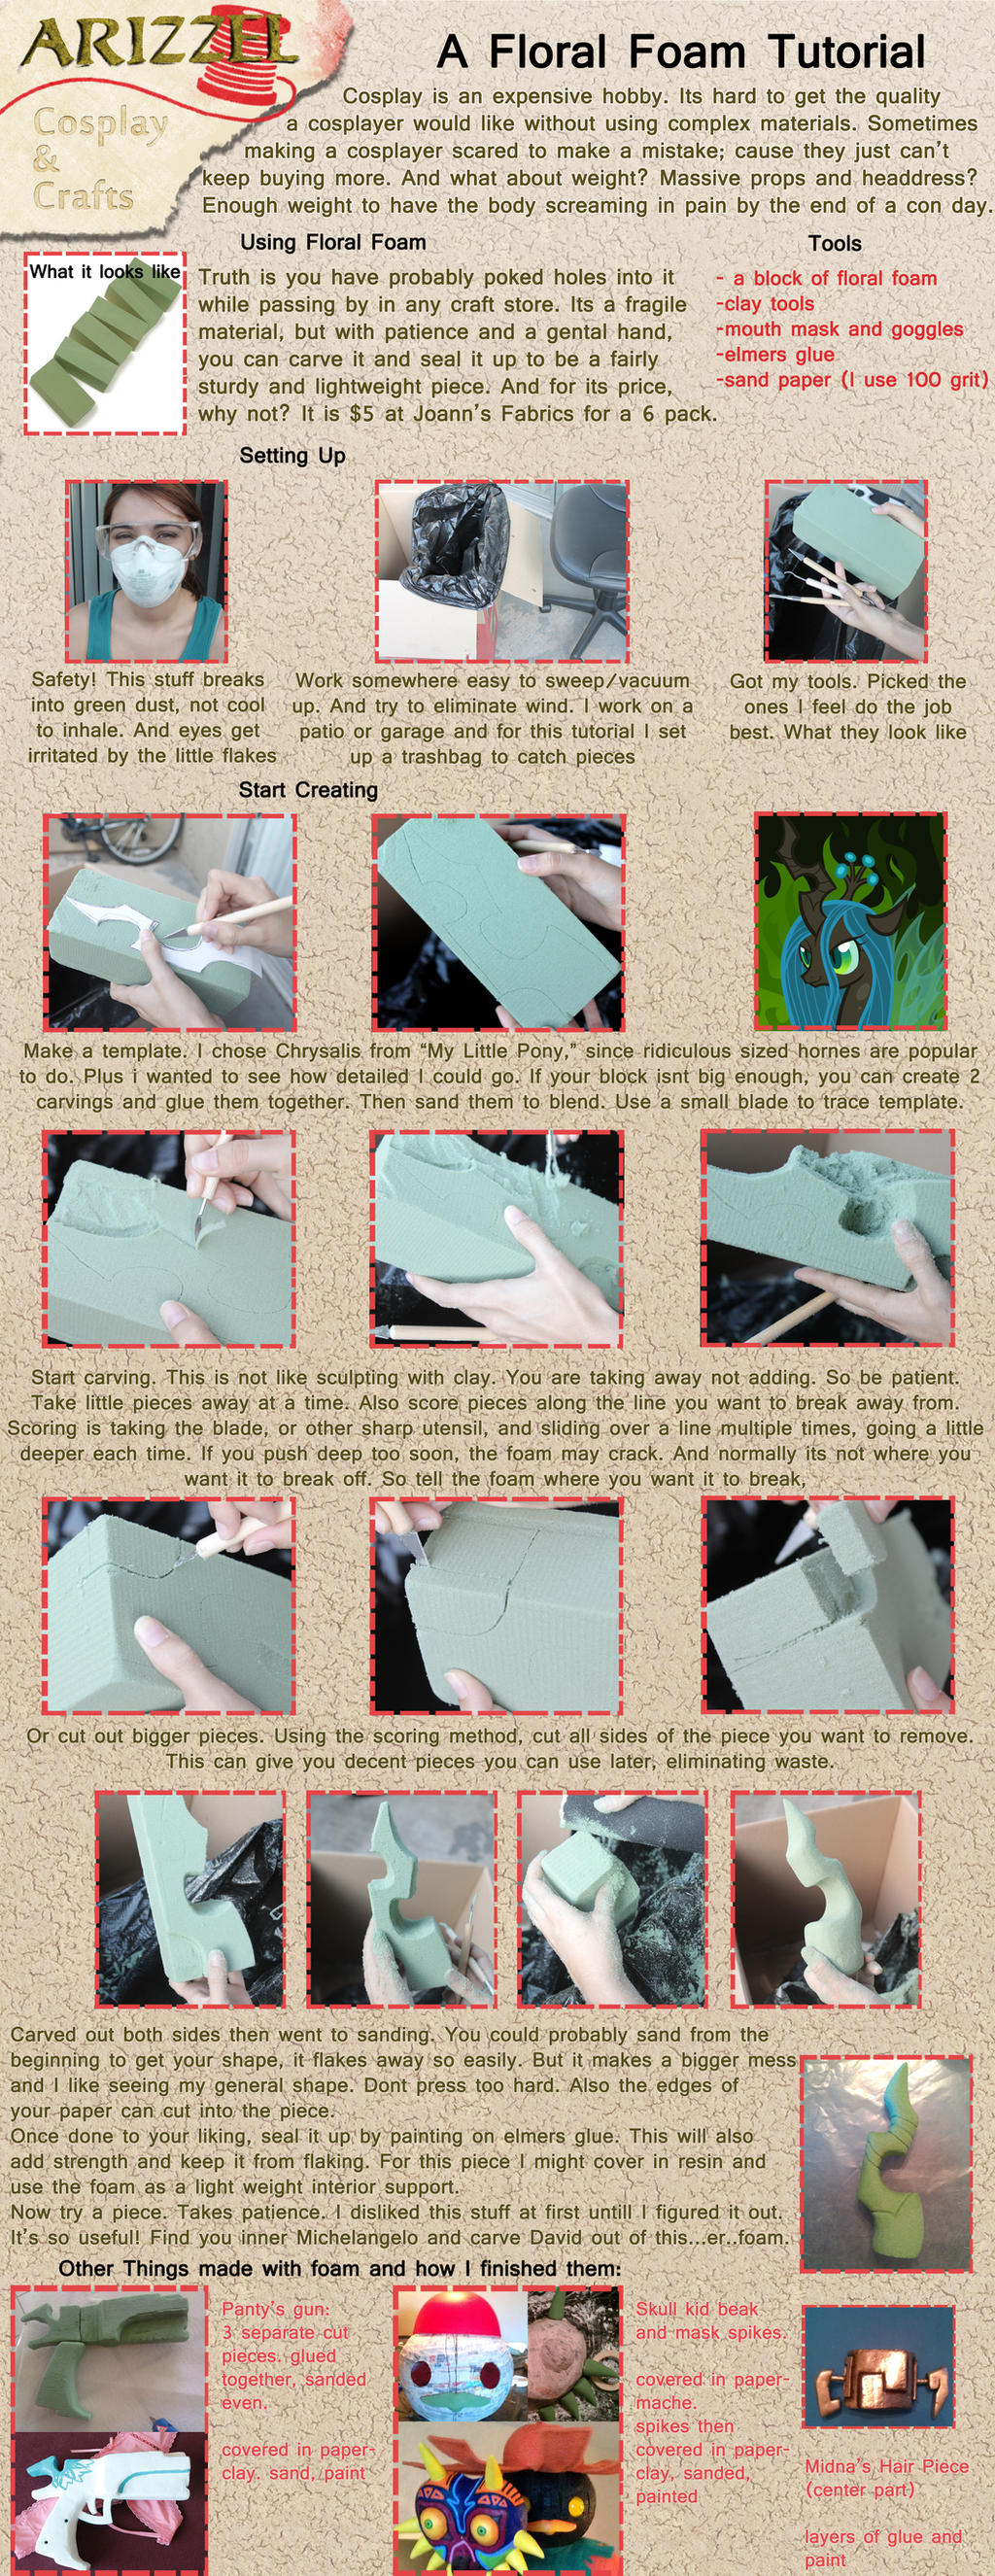 Cosplay with Floral Foam Tutorial by Arizzel on DeviantArt